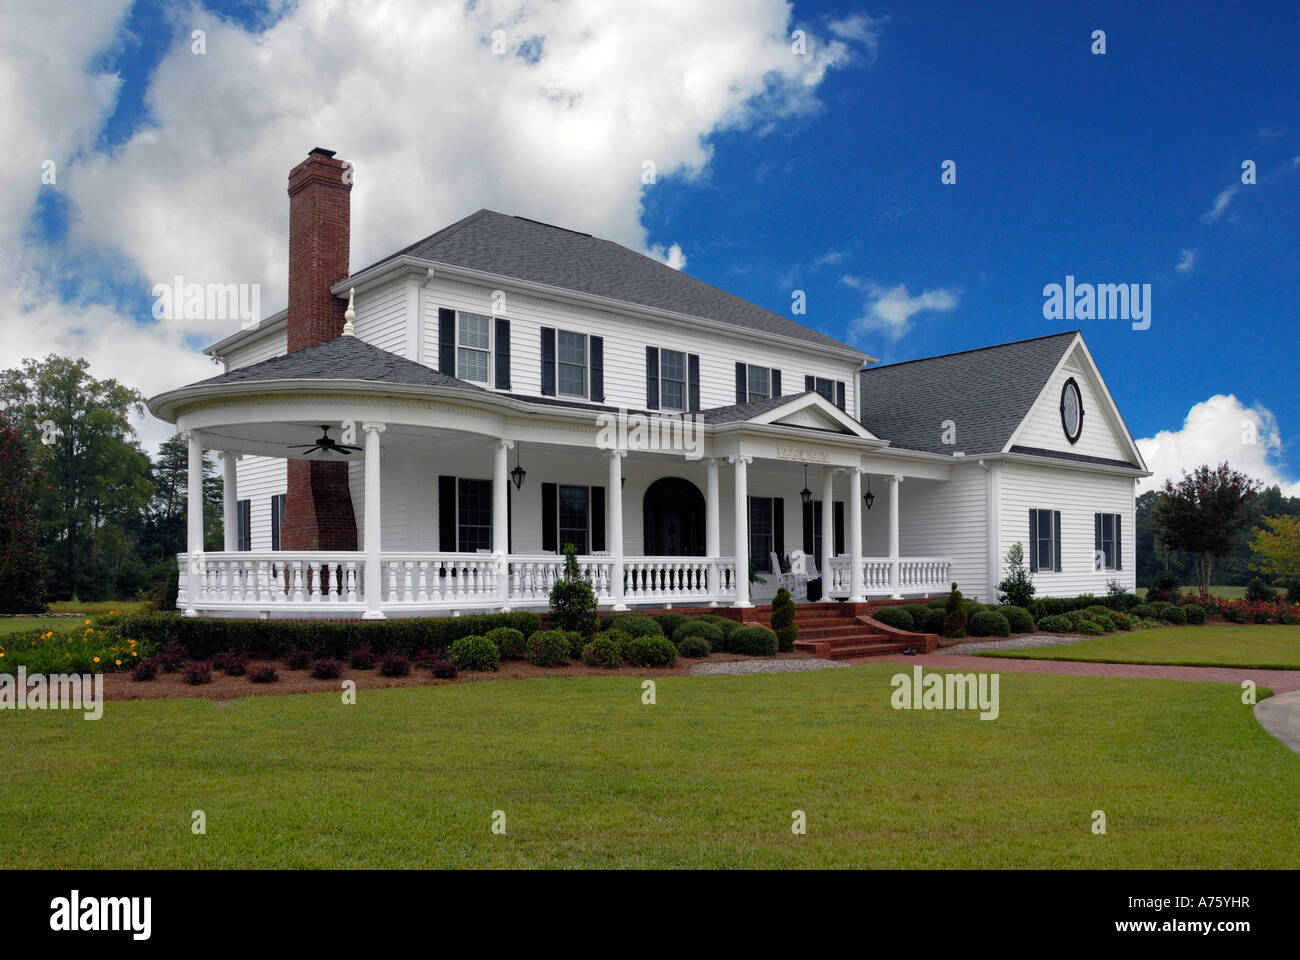 traditionellen s dlichen stil haus mit veranda usa ocoee tn stockfoto bild 11734786 alamy. Black Bedroom Furniture Sets. Home Design Ideas